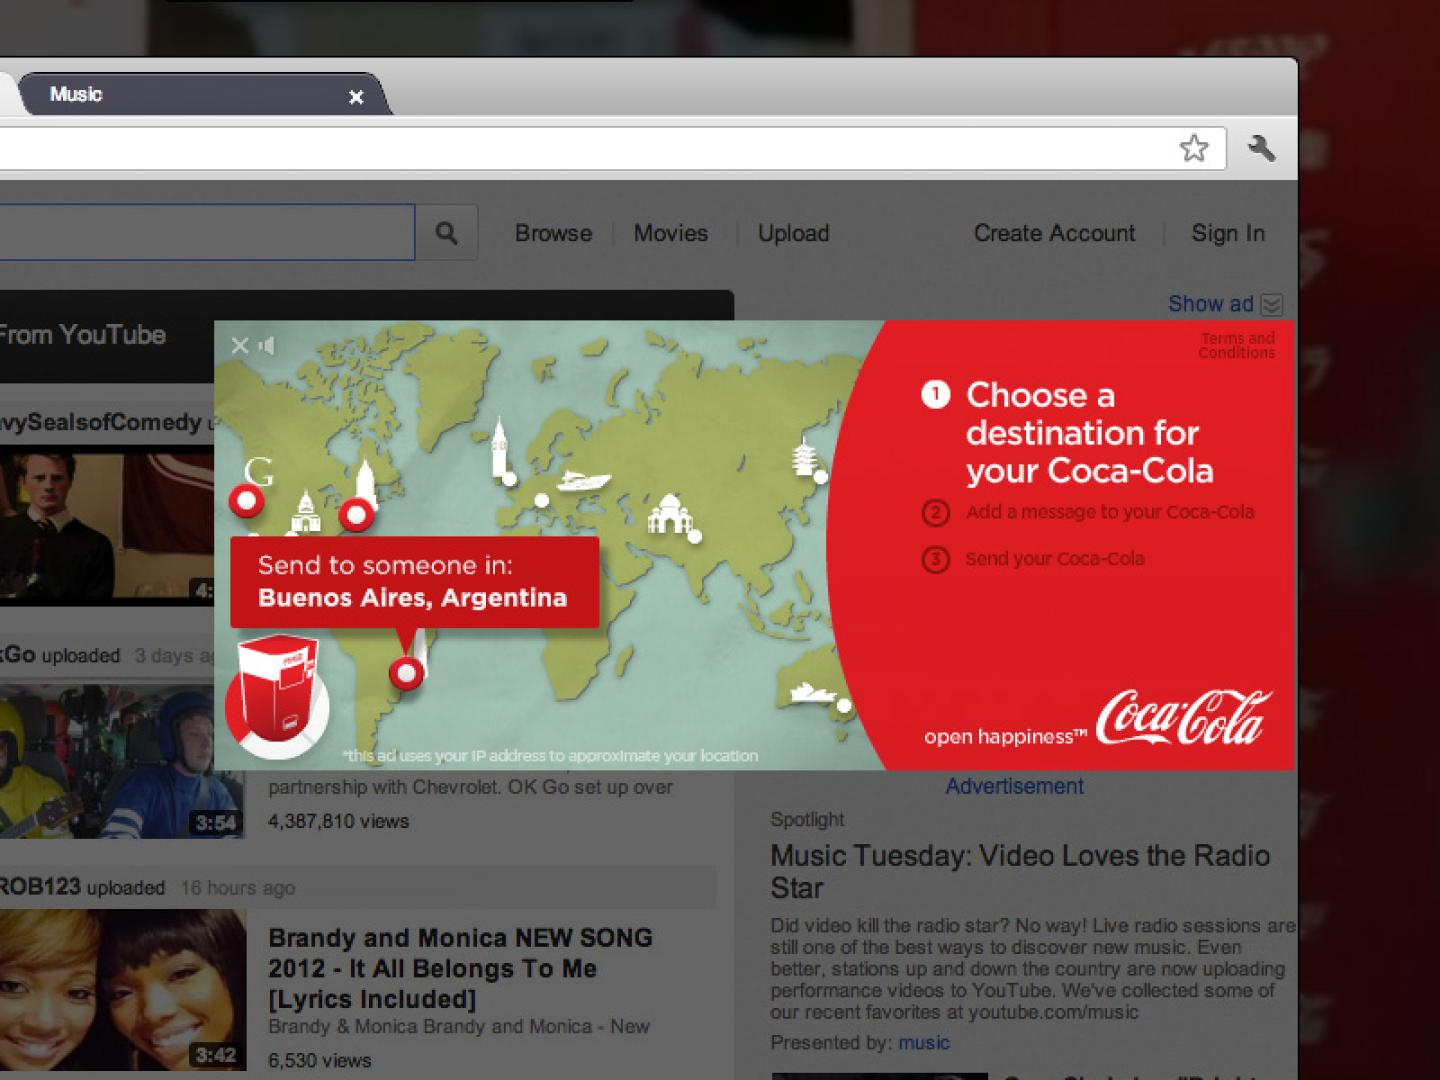 """""""Hilltop"""" Re-imagined for Coca-Cola, Project Re: Brief by Google Thumbnail"""